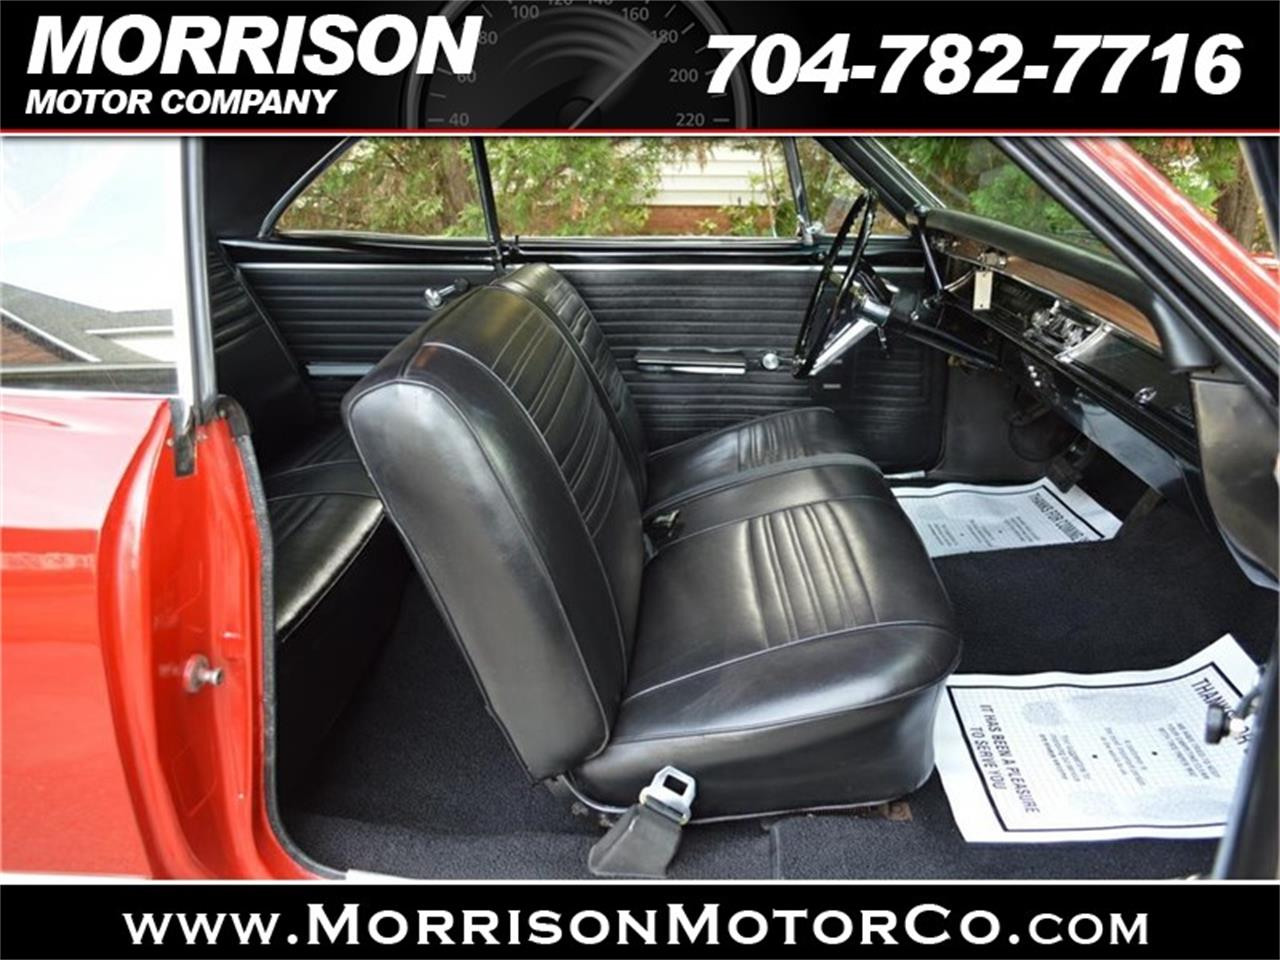 Large Picture of 1967 Chevrolet Chevelle Malibu located in North Carolina - $24,900.00 Offered by Morrison Motor Company - P626